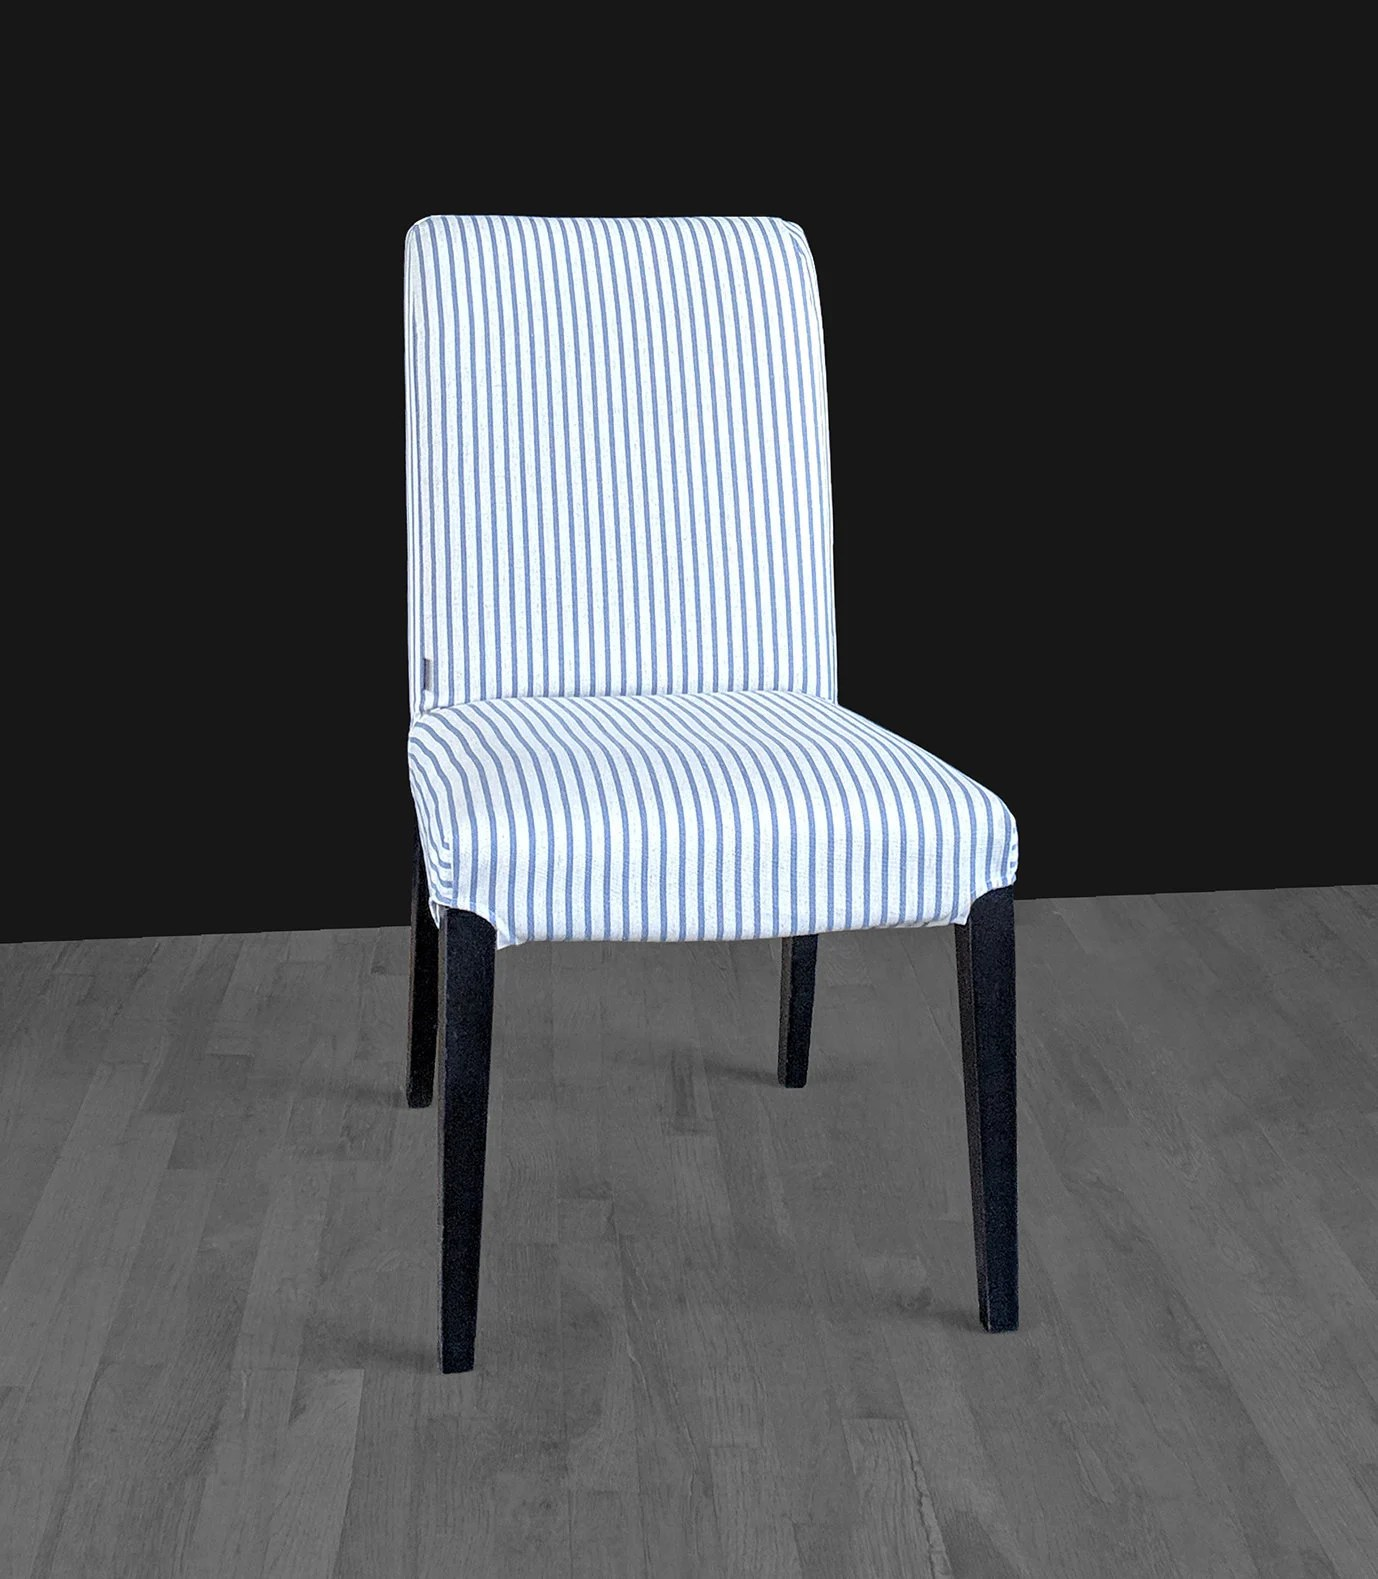 dining chair seat covers etsy wood kitchen chairs blue ticking stripe ikea henriksdal cover image 0